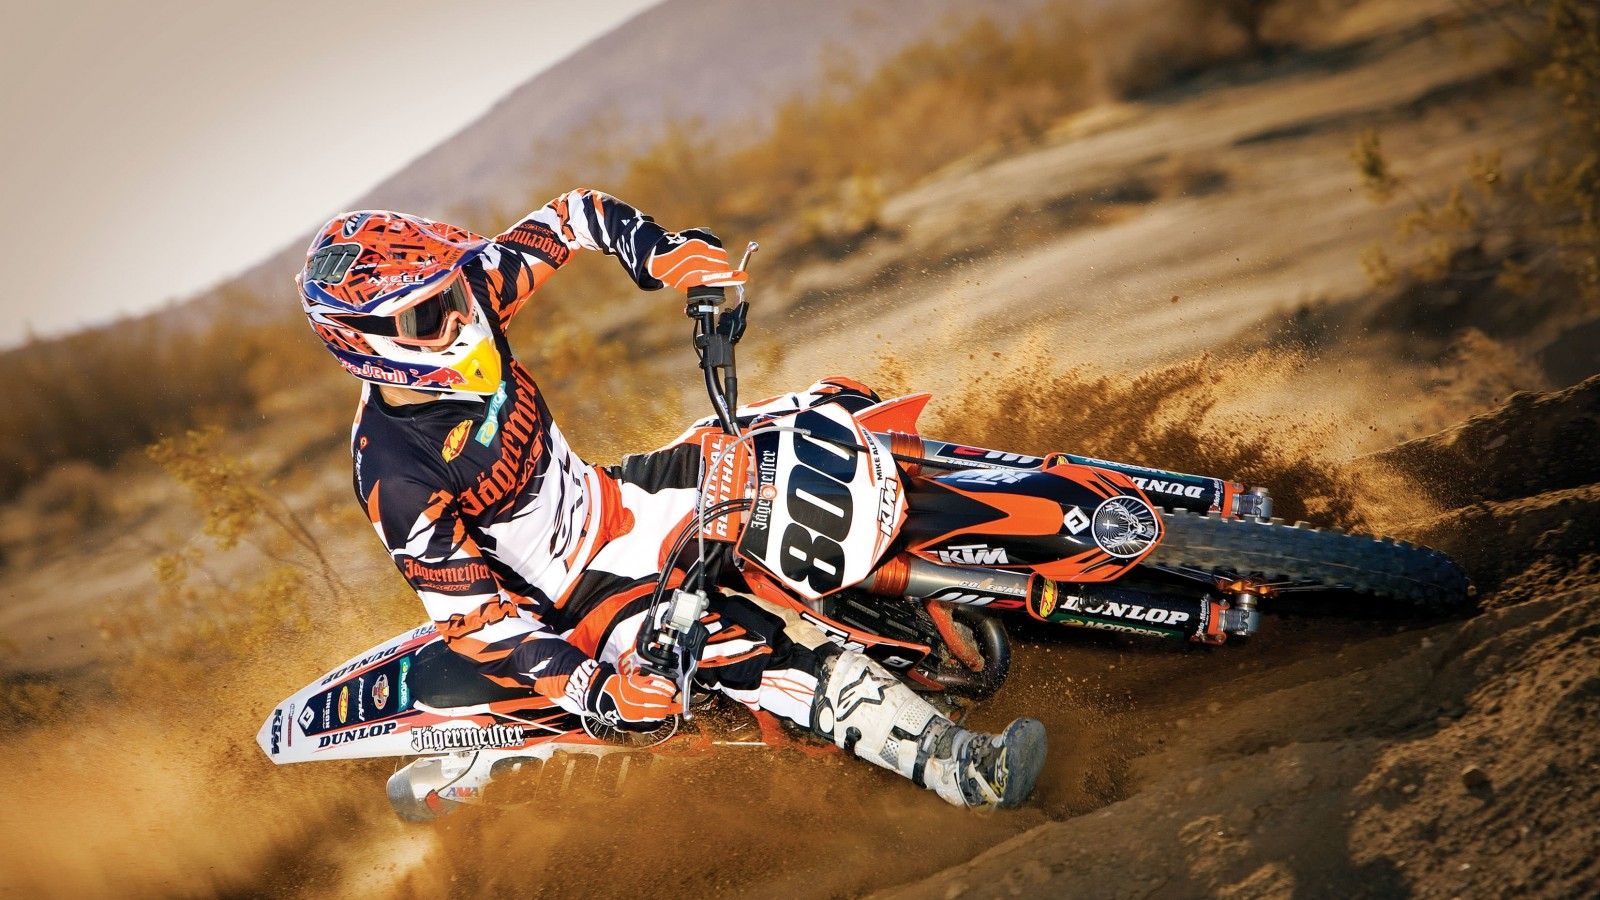 Mike Alessi Wallpaper for Desktop 1600x900